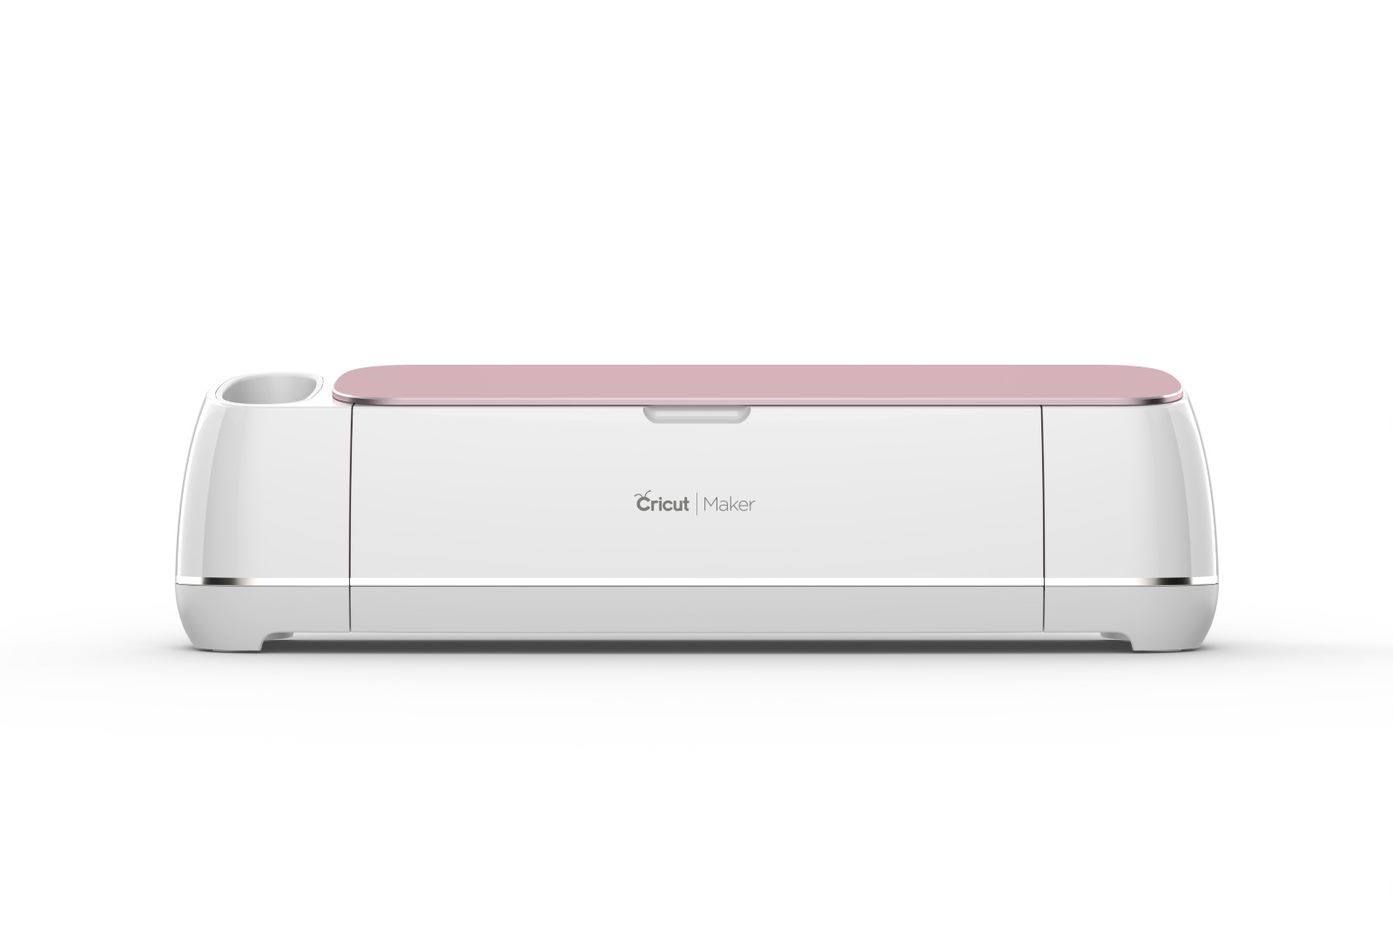 2007004 - Cricut Maker (Rose)